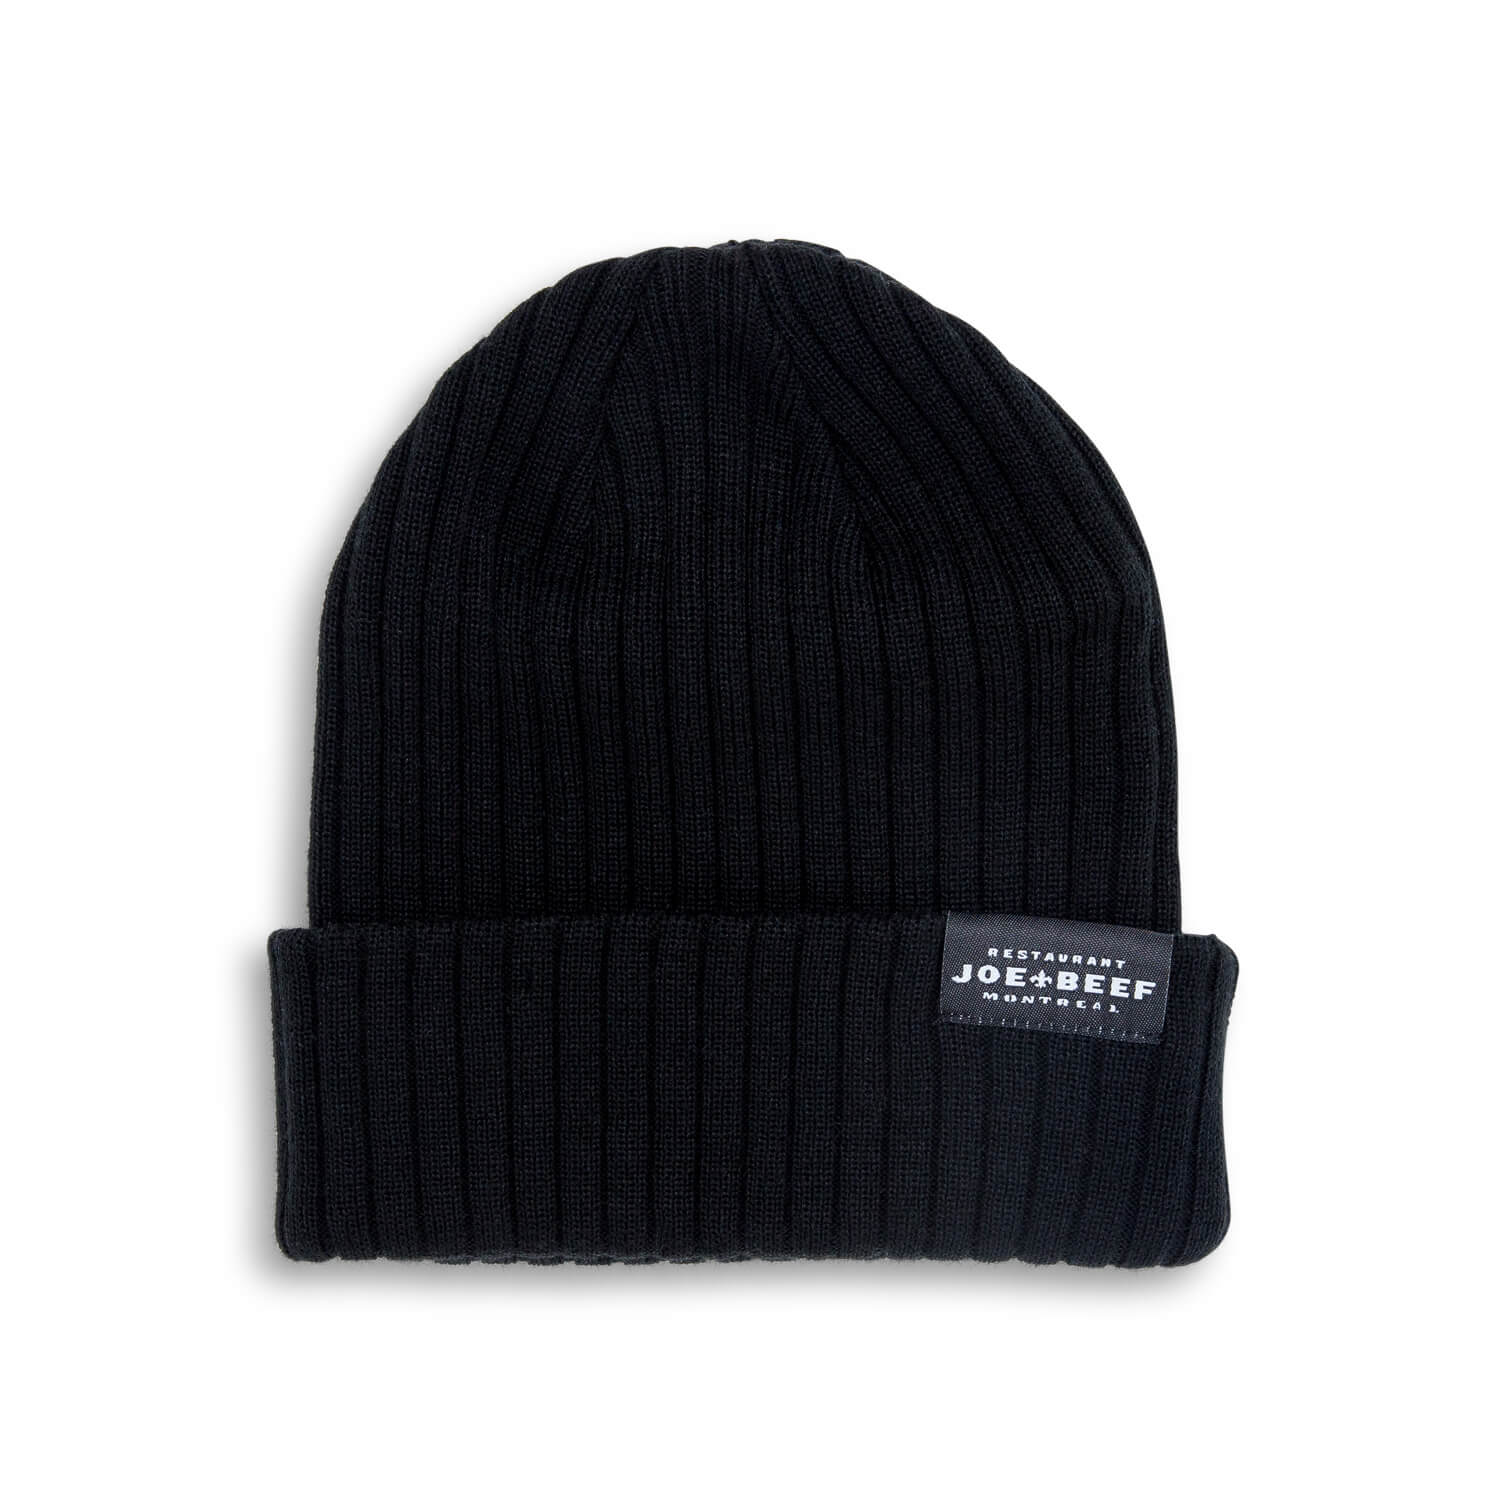 Joe Beef Tuque (Black)